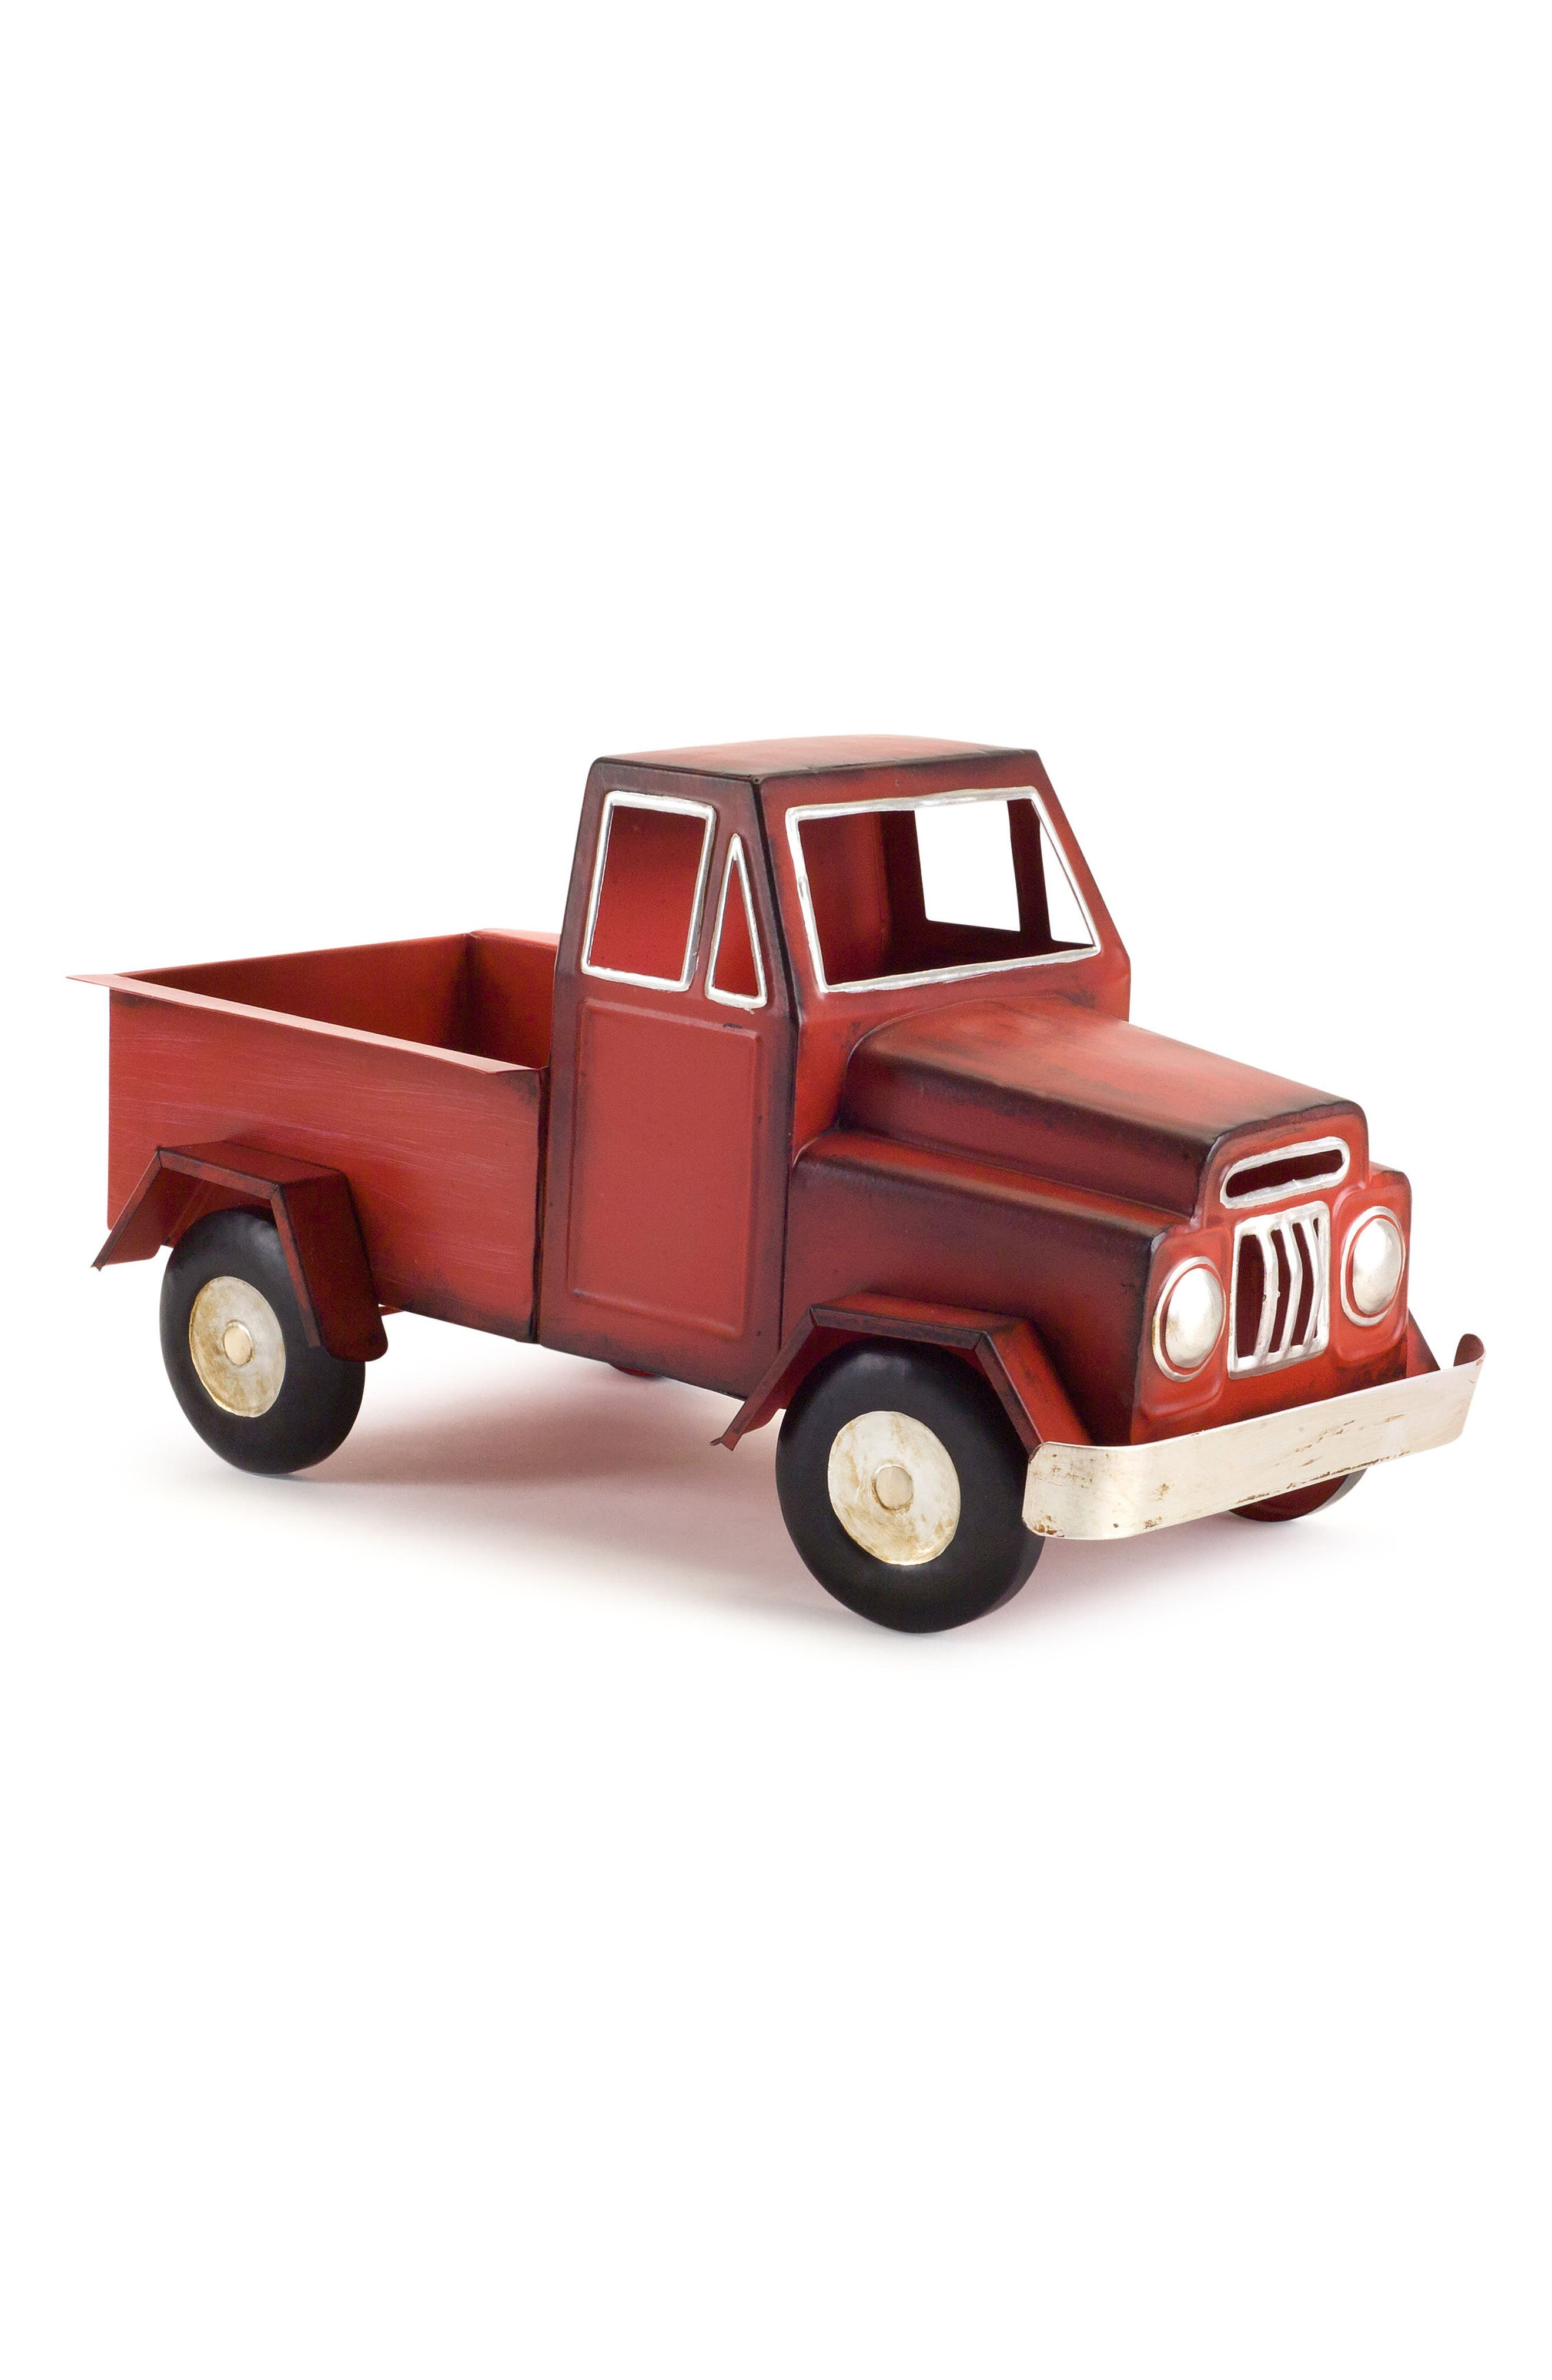 Main Image - Melrose Gifts Decorative Truck